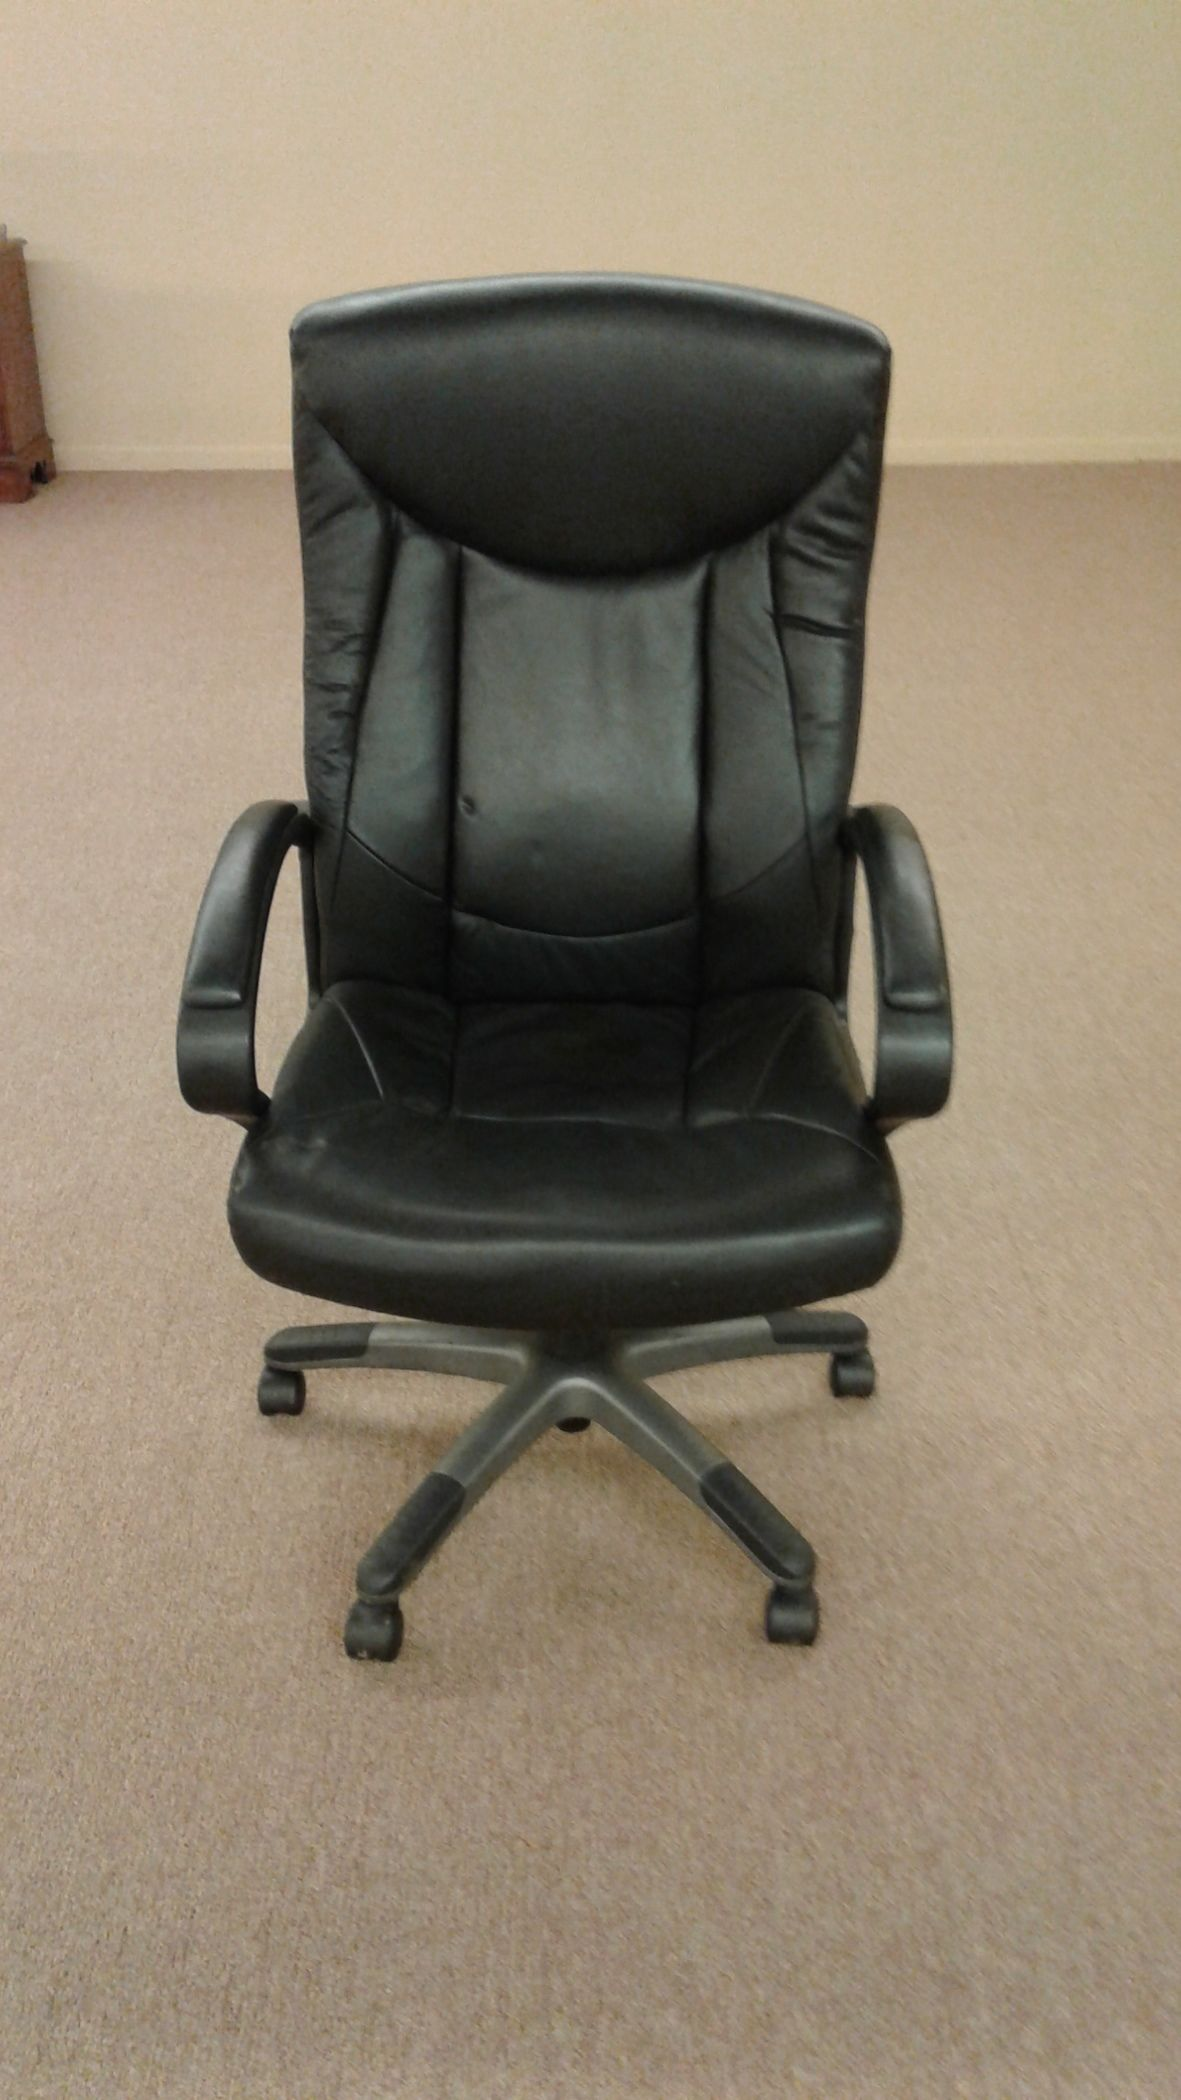 bassett office chair wedding chairs for sale leather delmarva furniture consignment